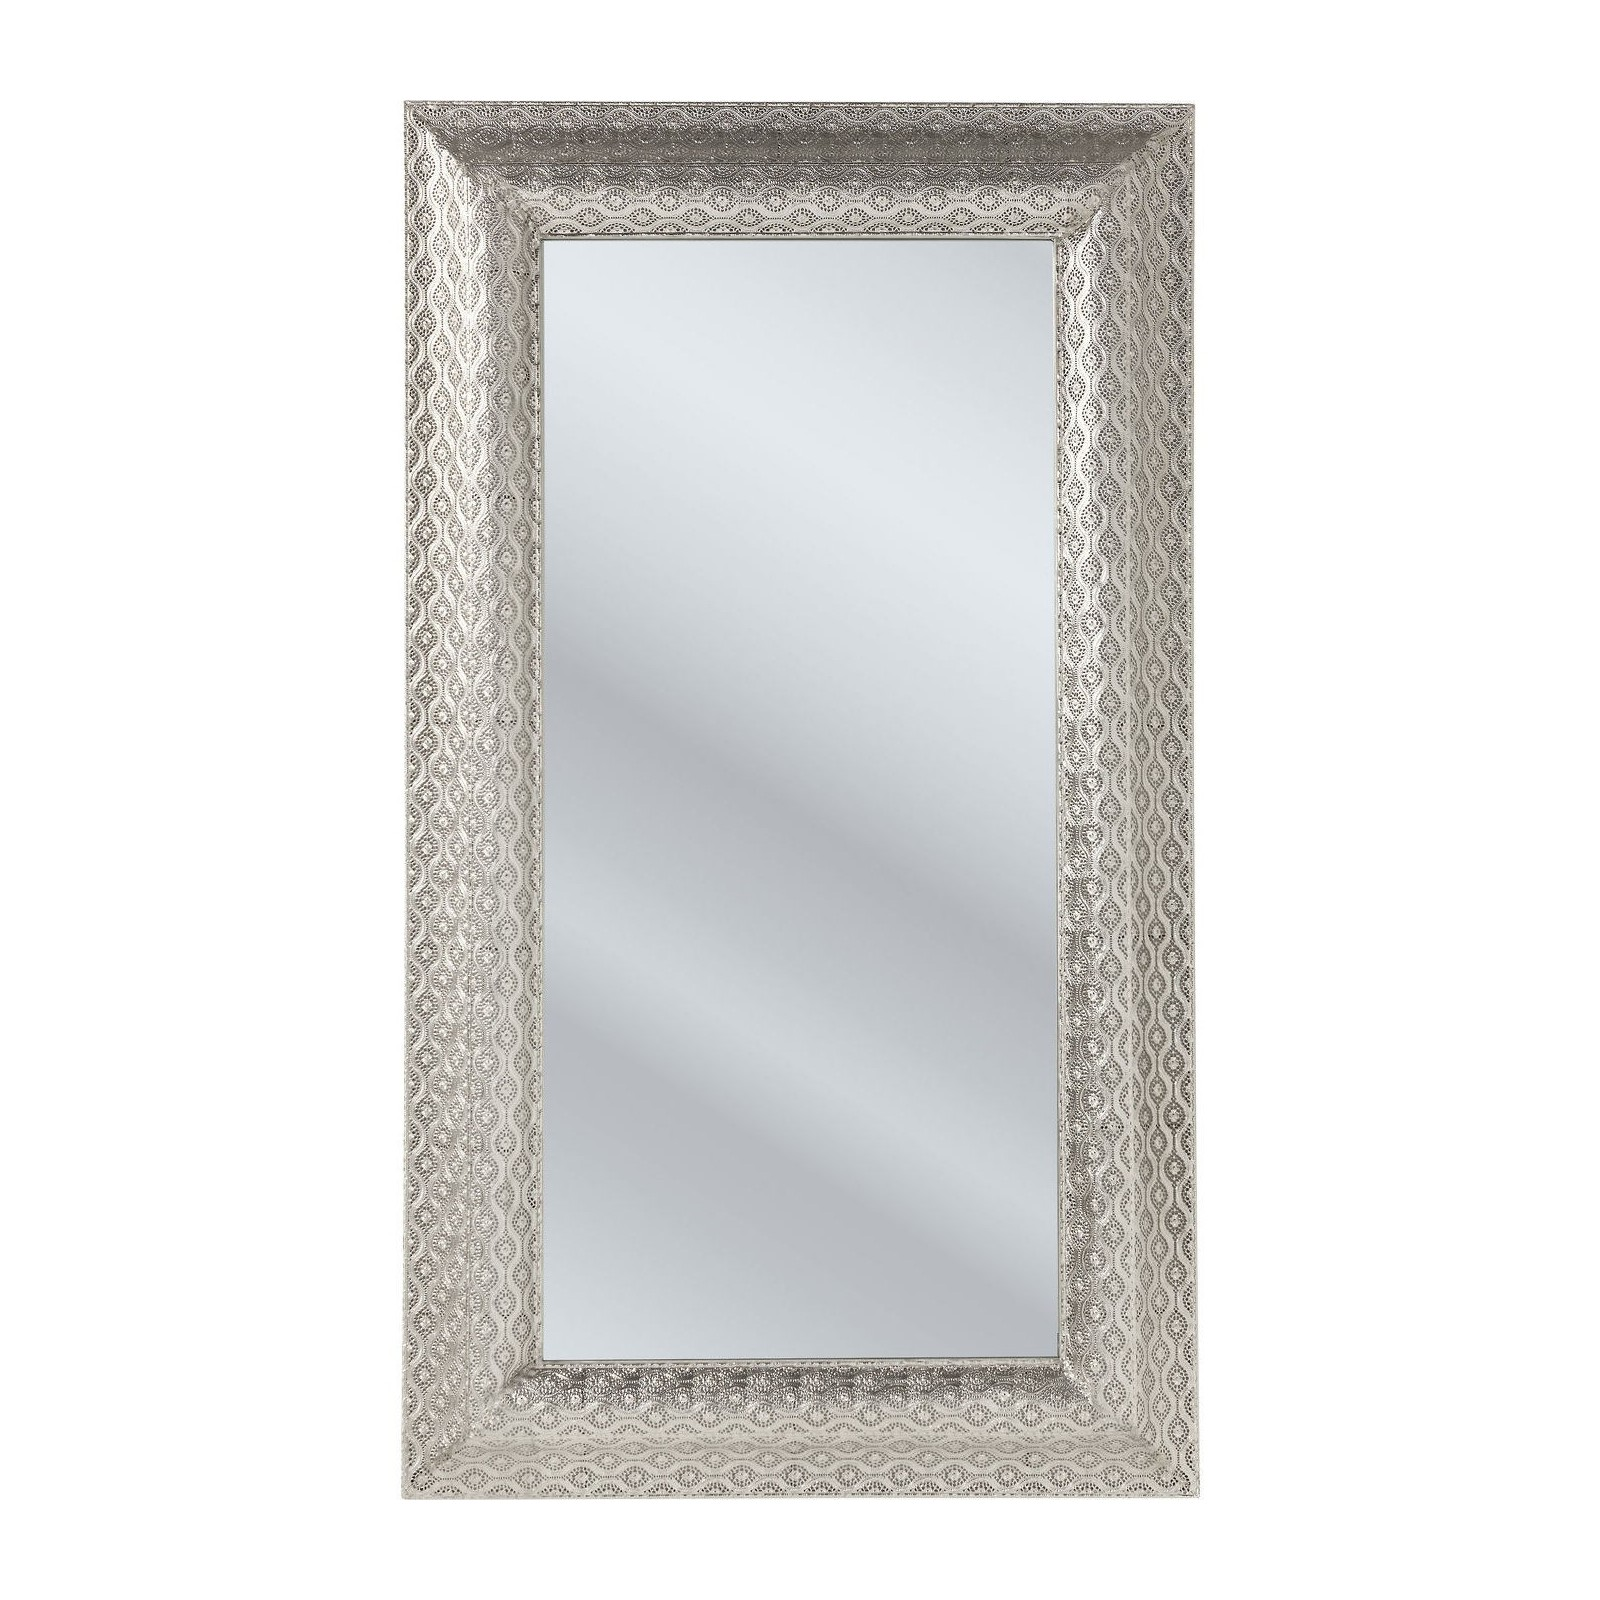 Grand 160x90 format rectangle inspiration orientale for Miroir 160 x 50